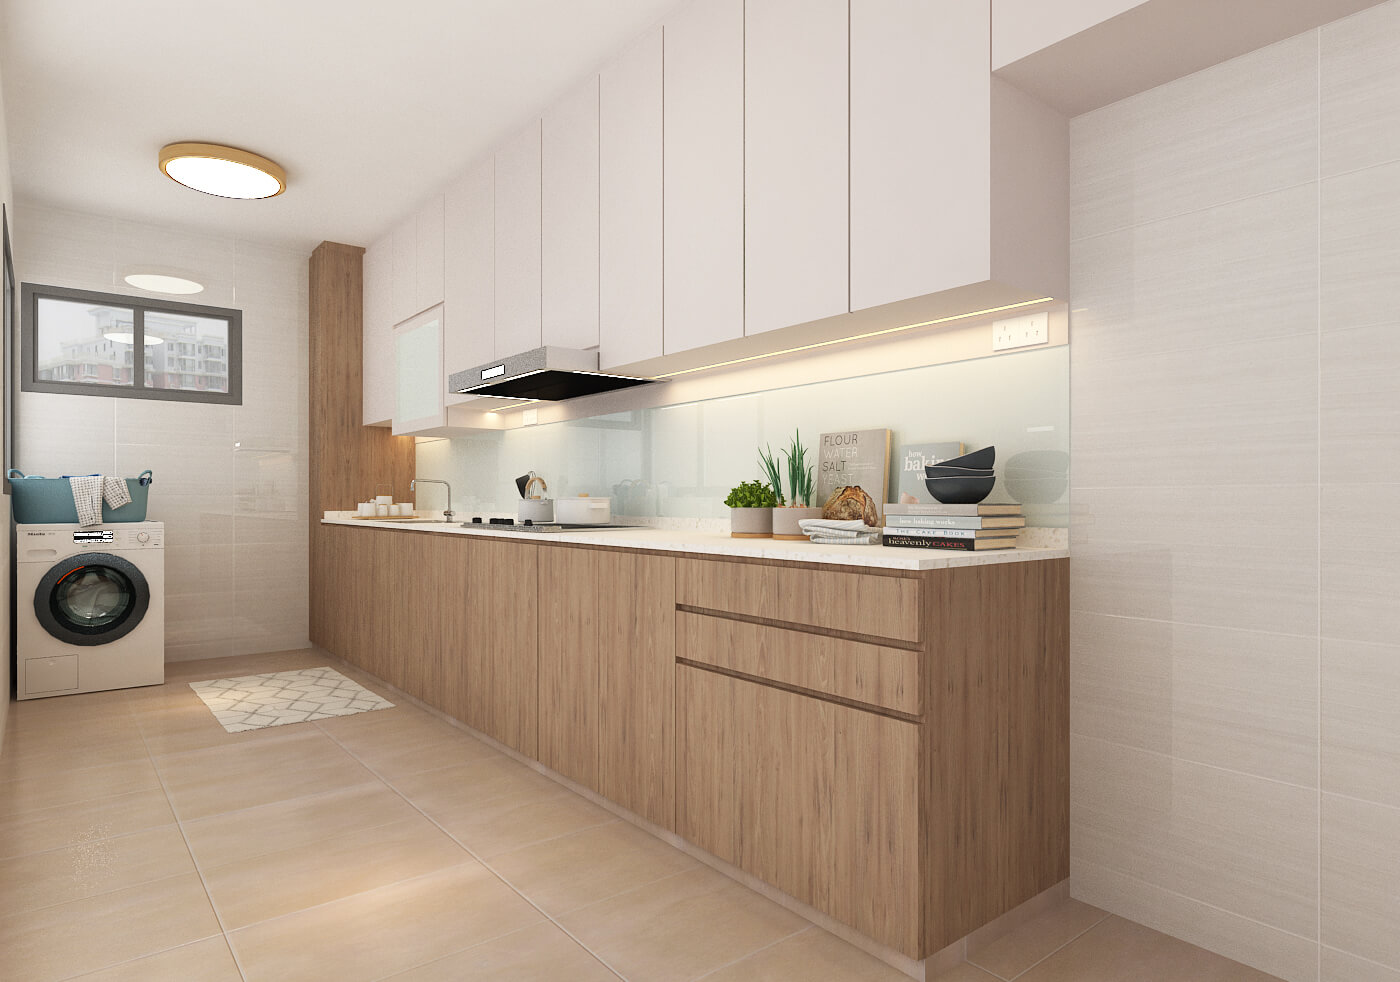 2 Room BTO model of a Kitchen